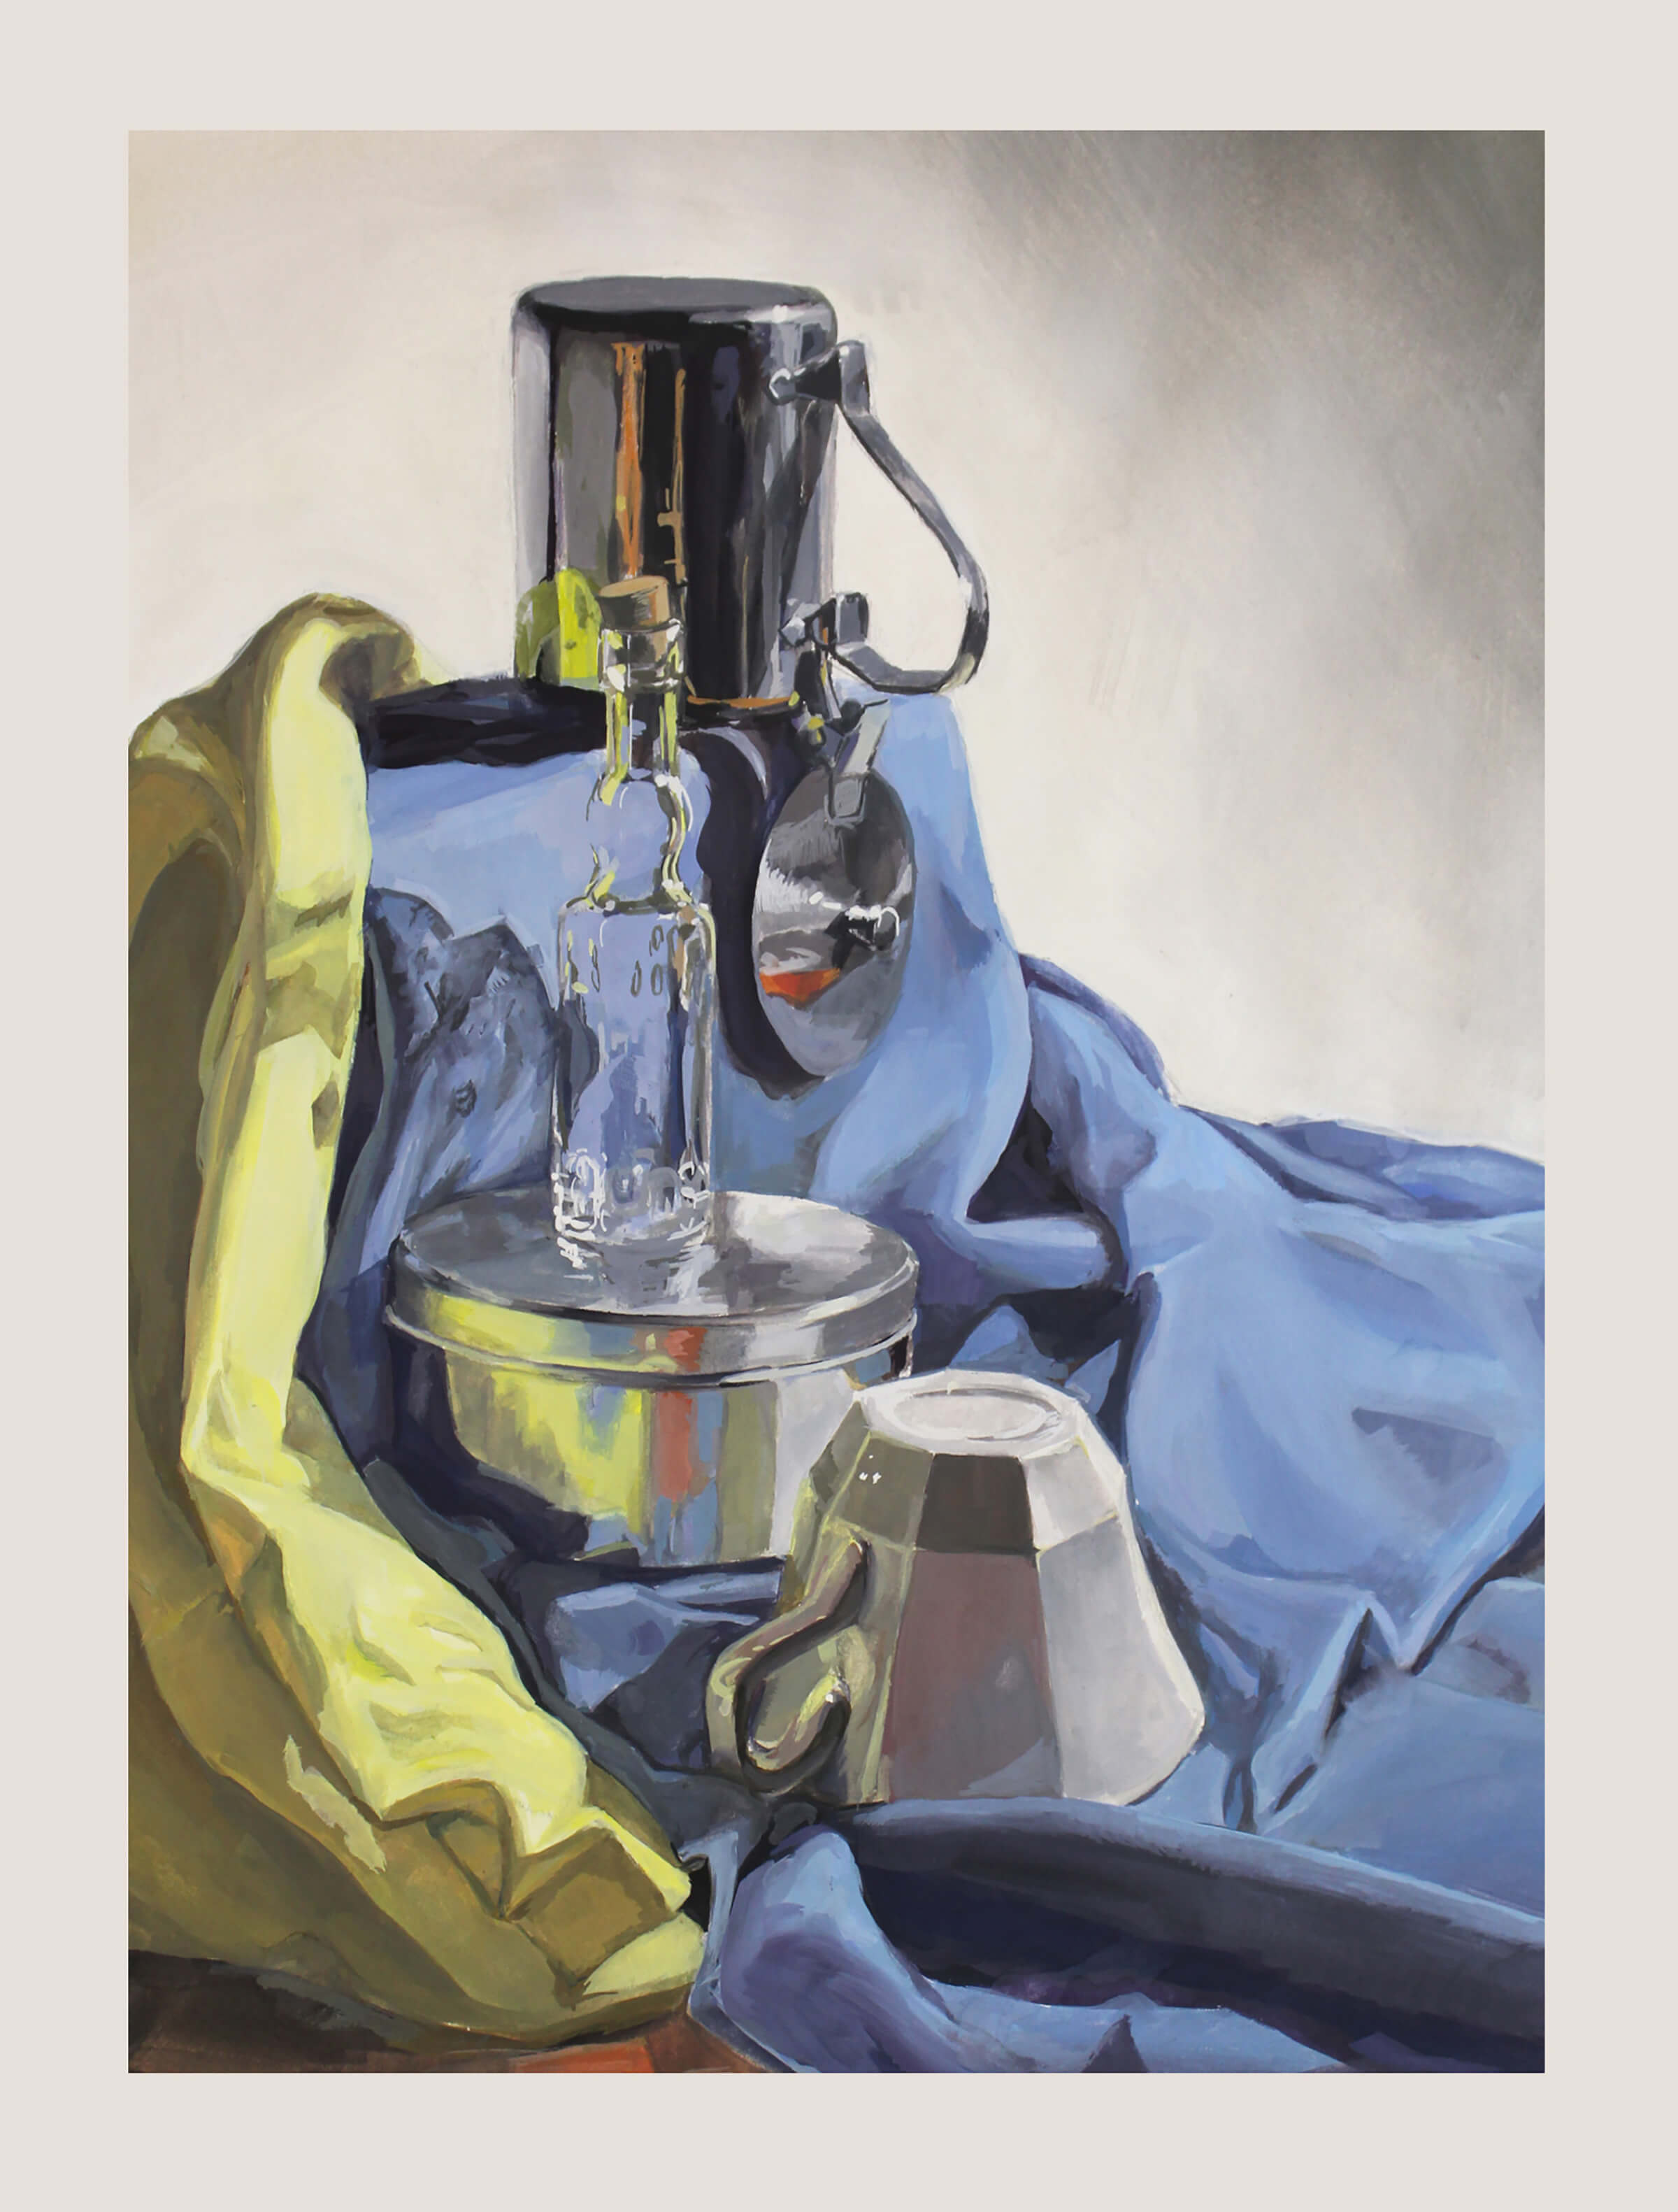 still-life traditional painting of a corked bottle, a tea cup, and aluminum pots on a blue draped sheet